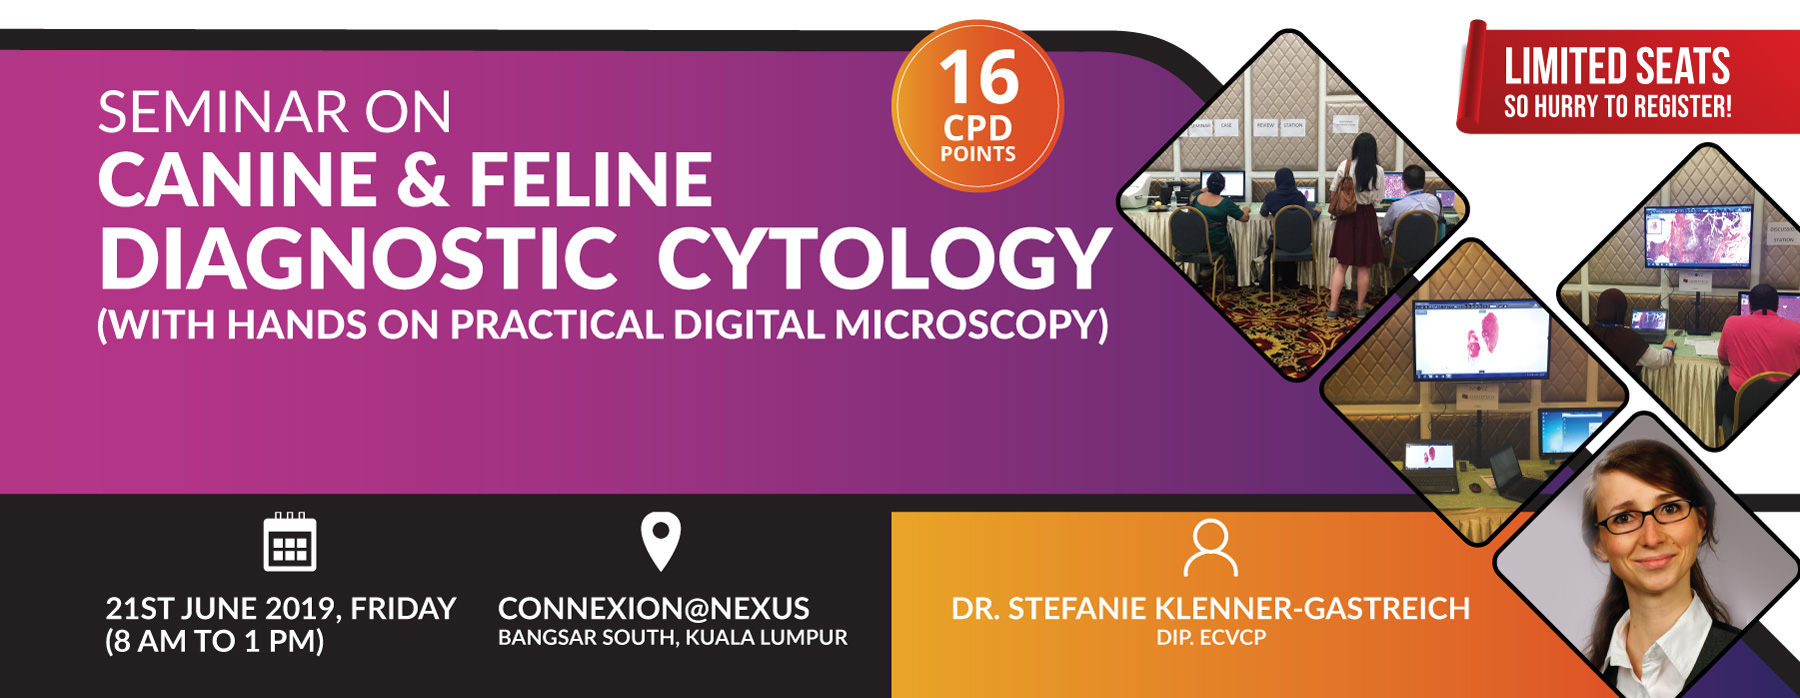 Seminar on Canine and Feline Diagnostic Cytology